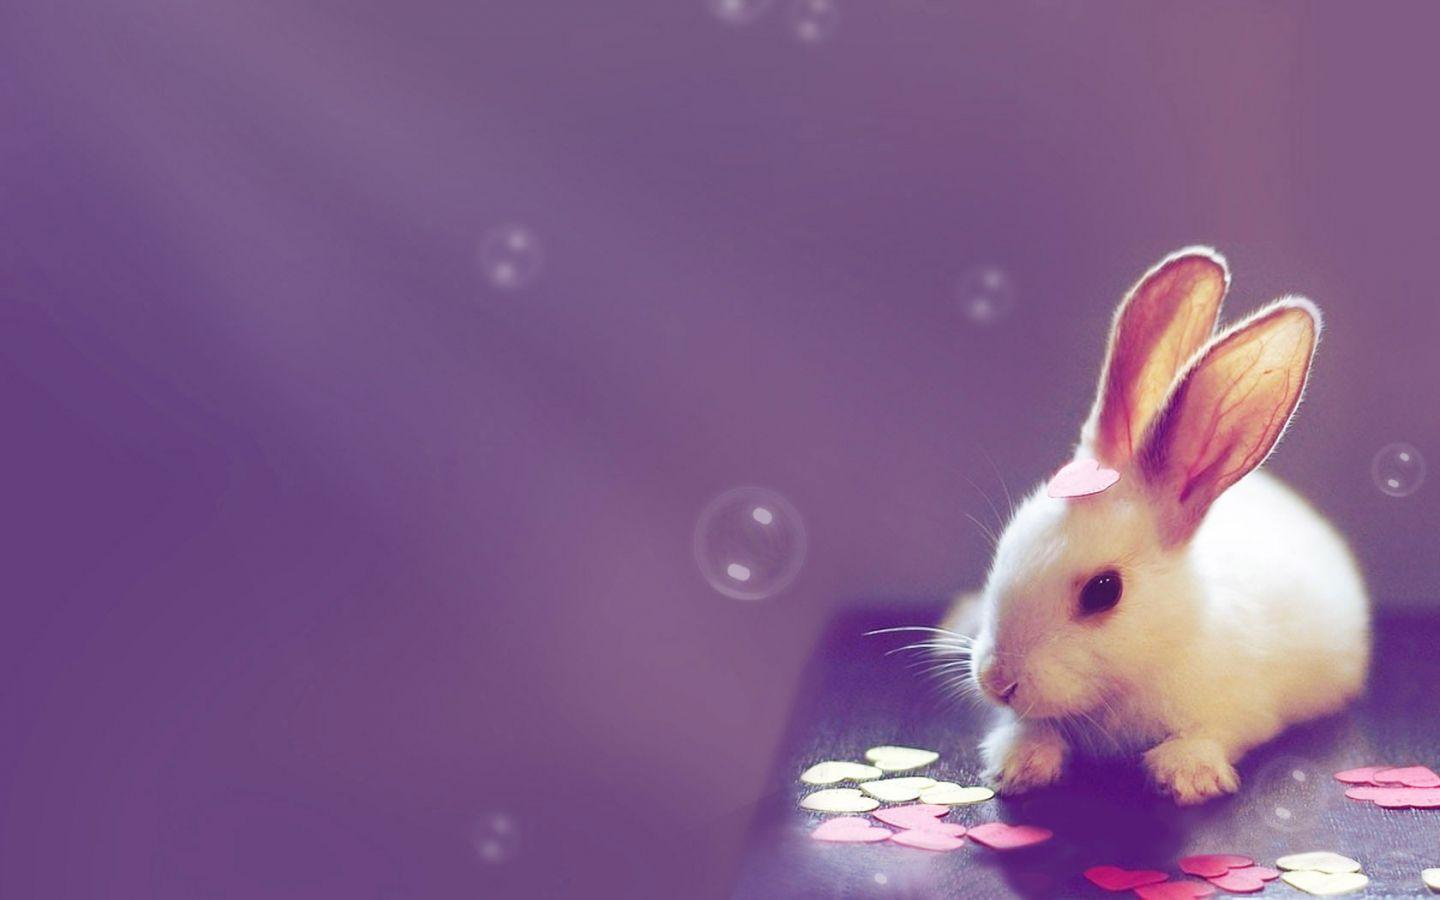 Cute Backgrounds For Desktop 1440x900